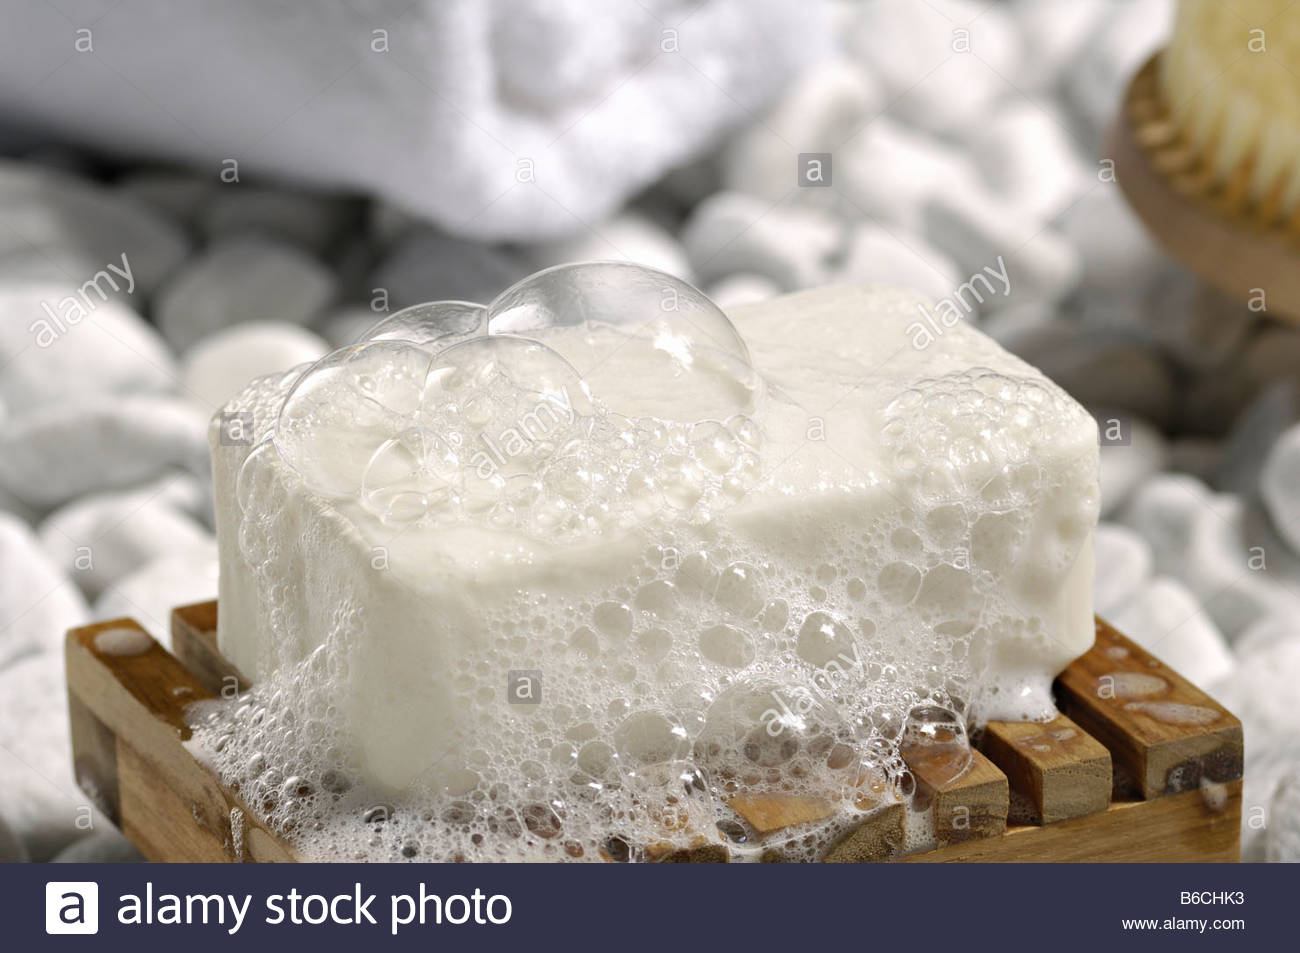 Close-up of soap bar with soap suds - Stock Image